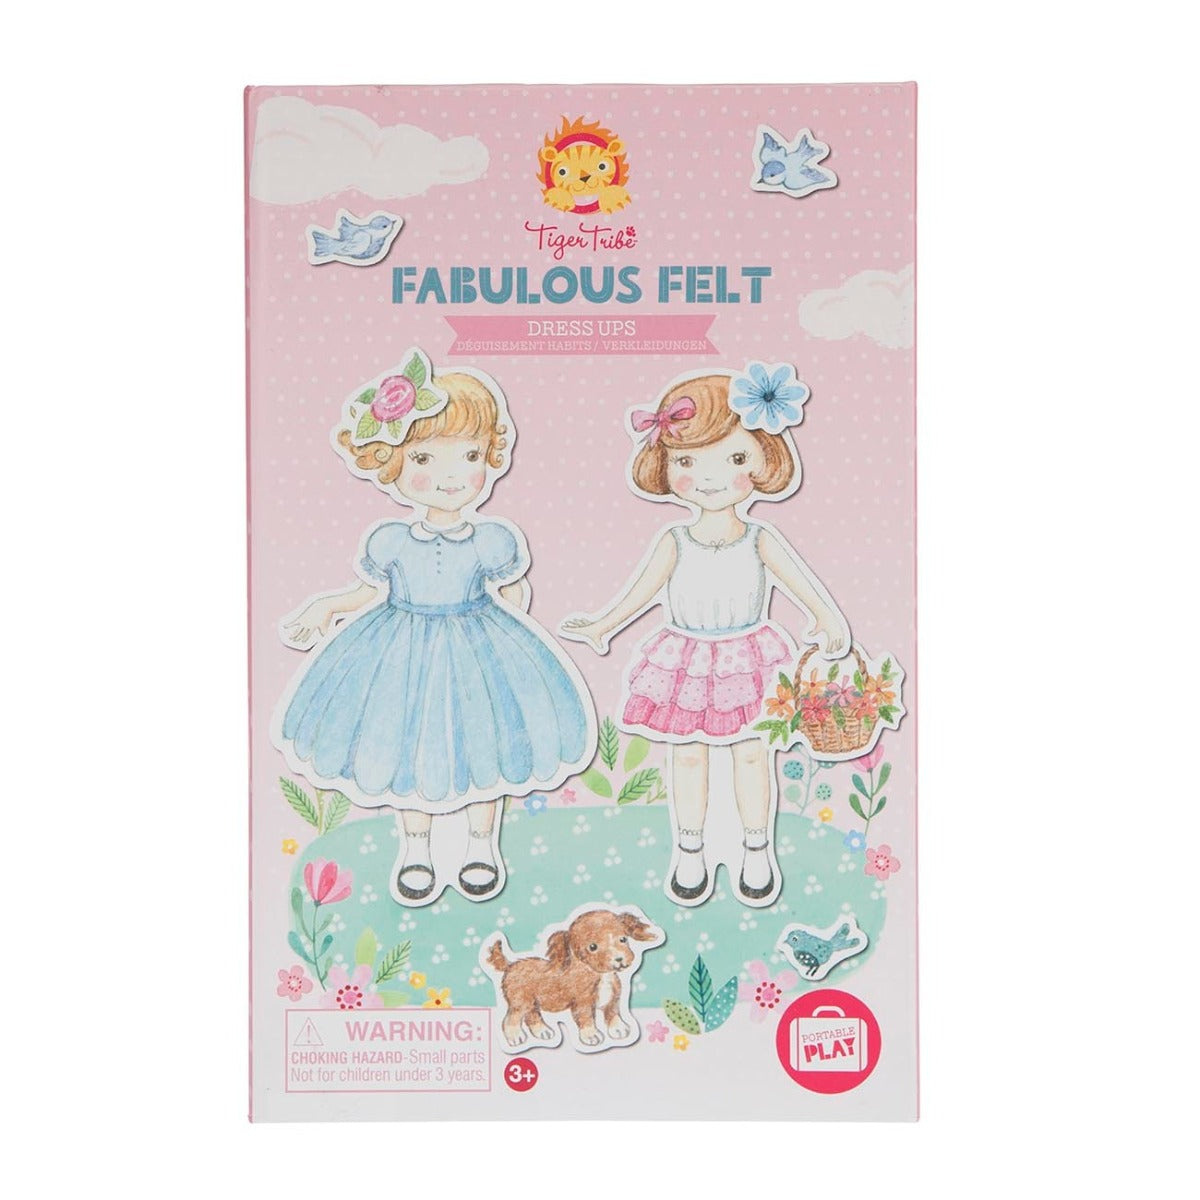 Tiger Tribe Fabulous Felt Dress Ups Activity Set